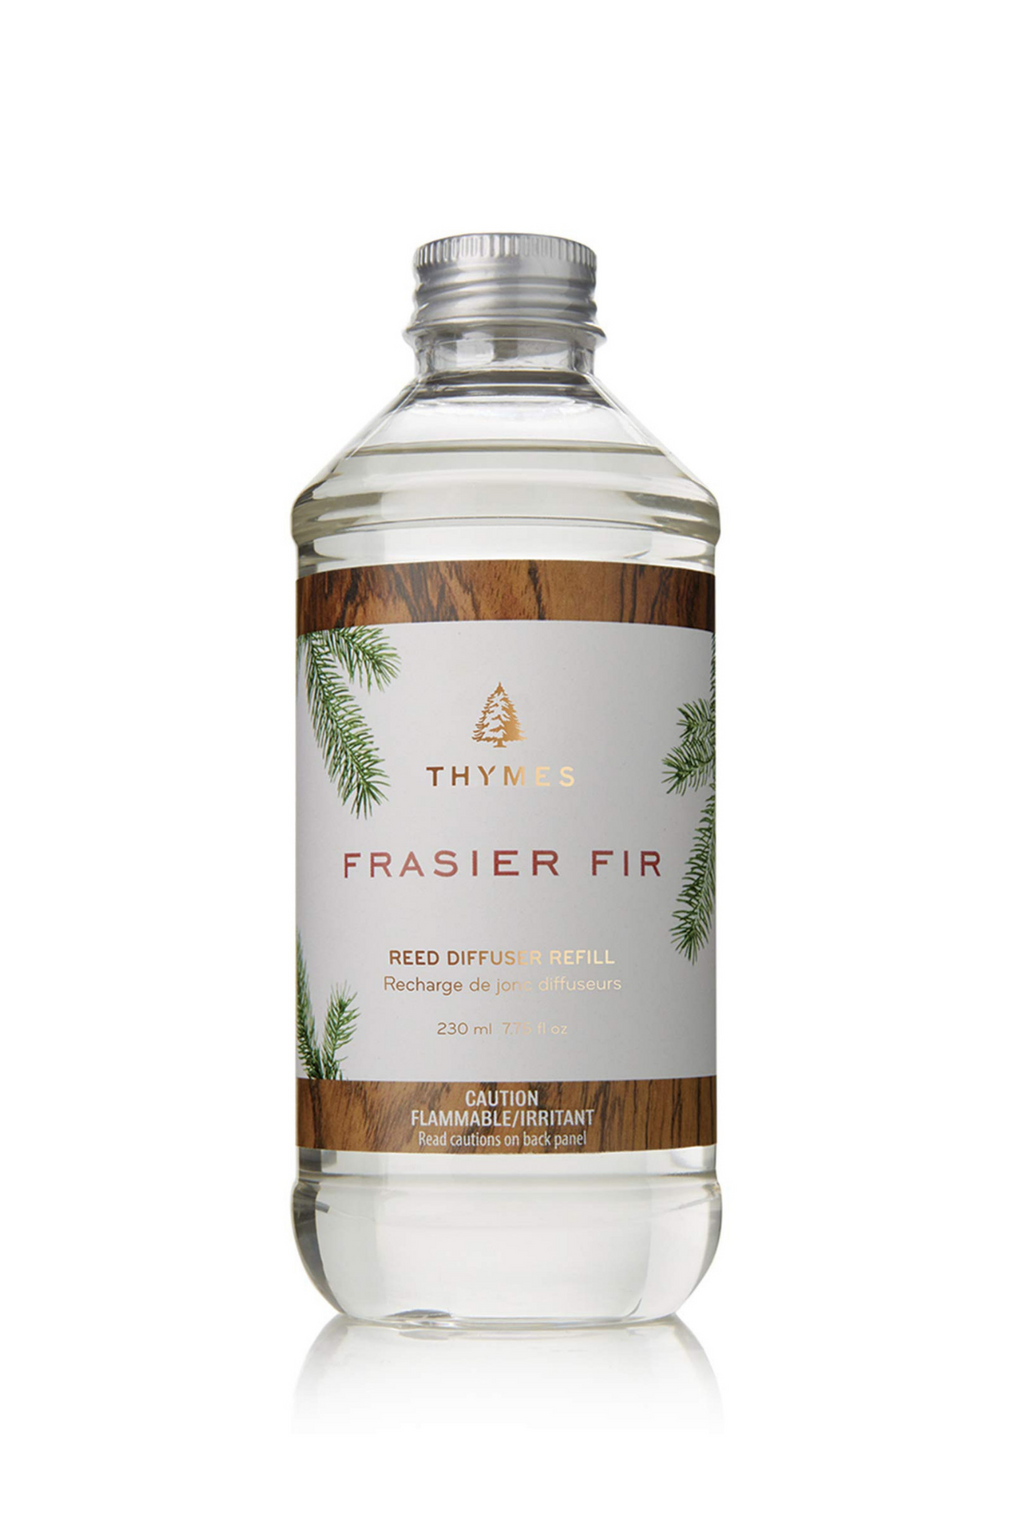 Thymes Frasier Fir Reed Diffuser Oil Refil